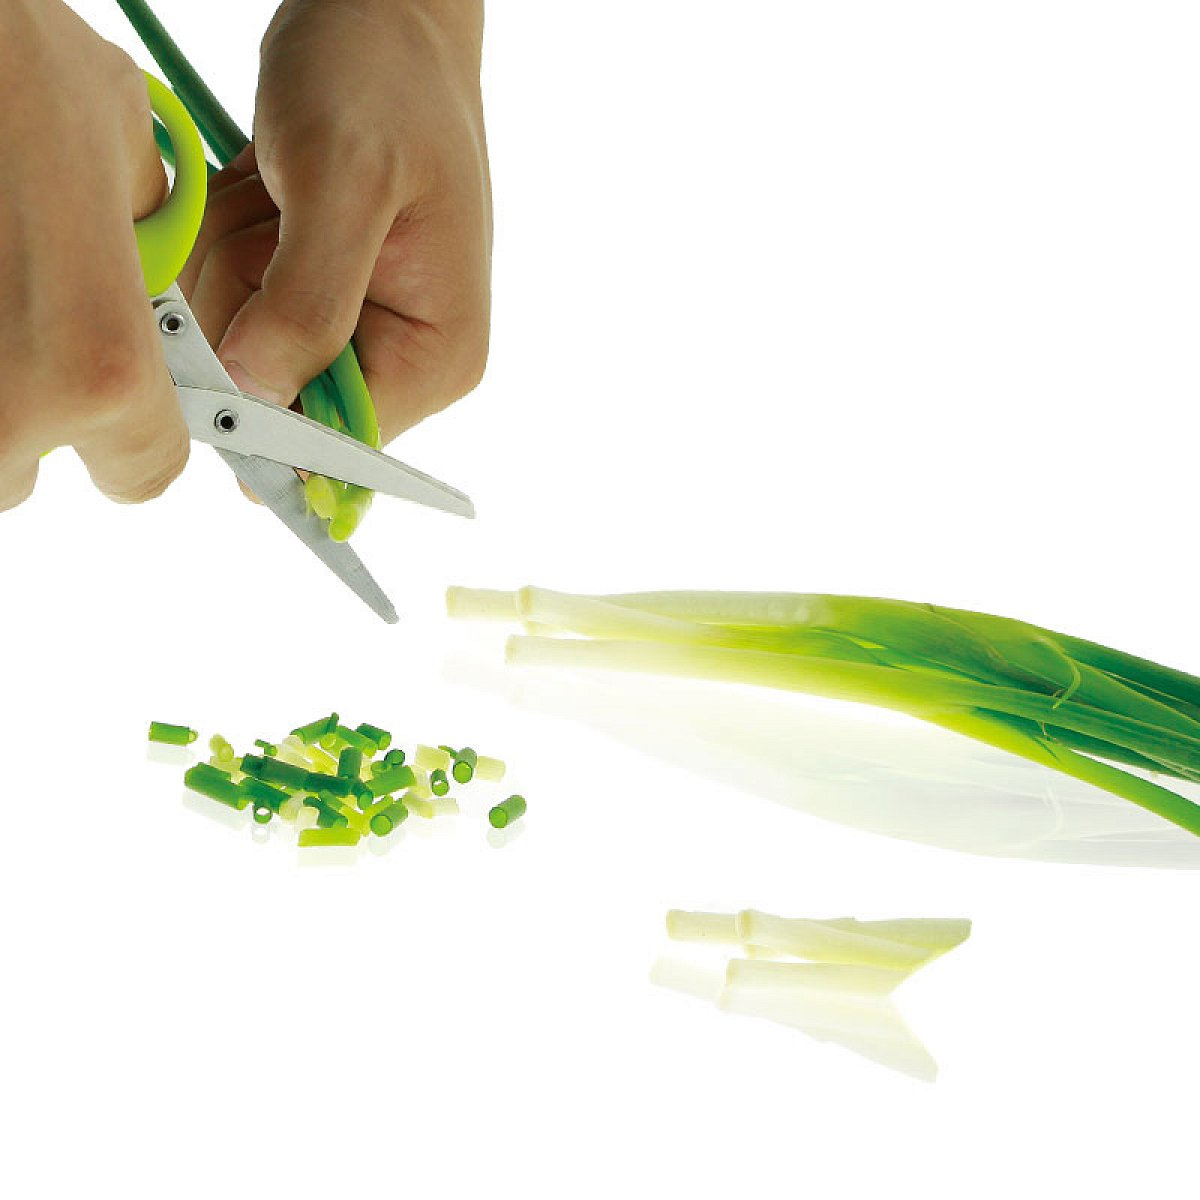 Herb scissors with 6 blades